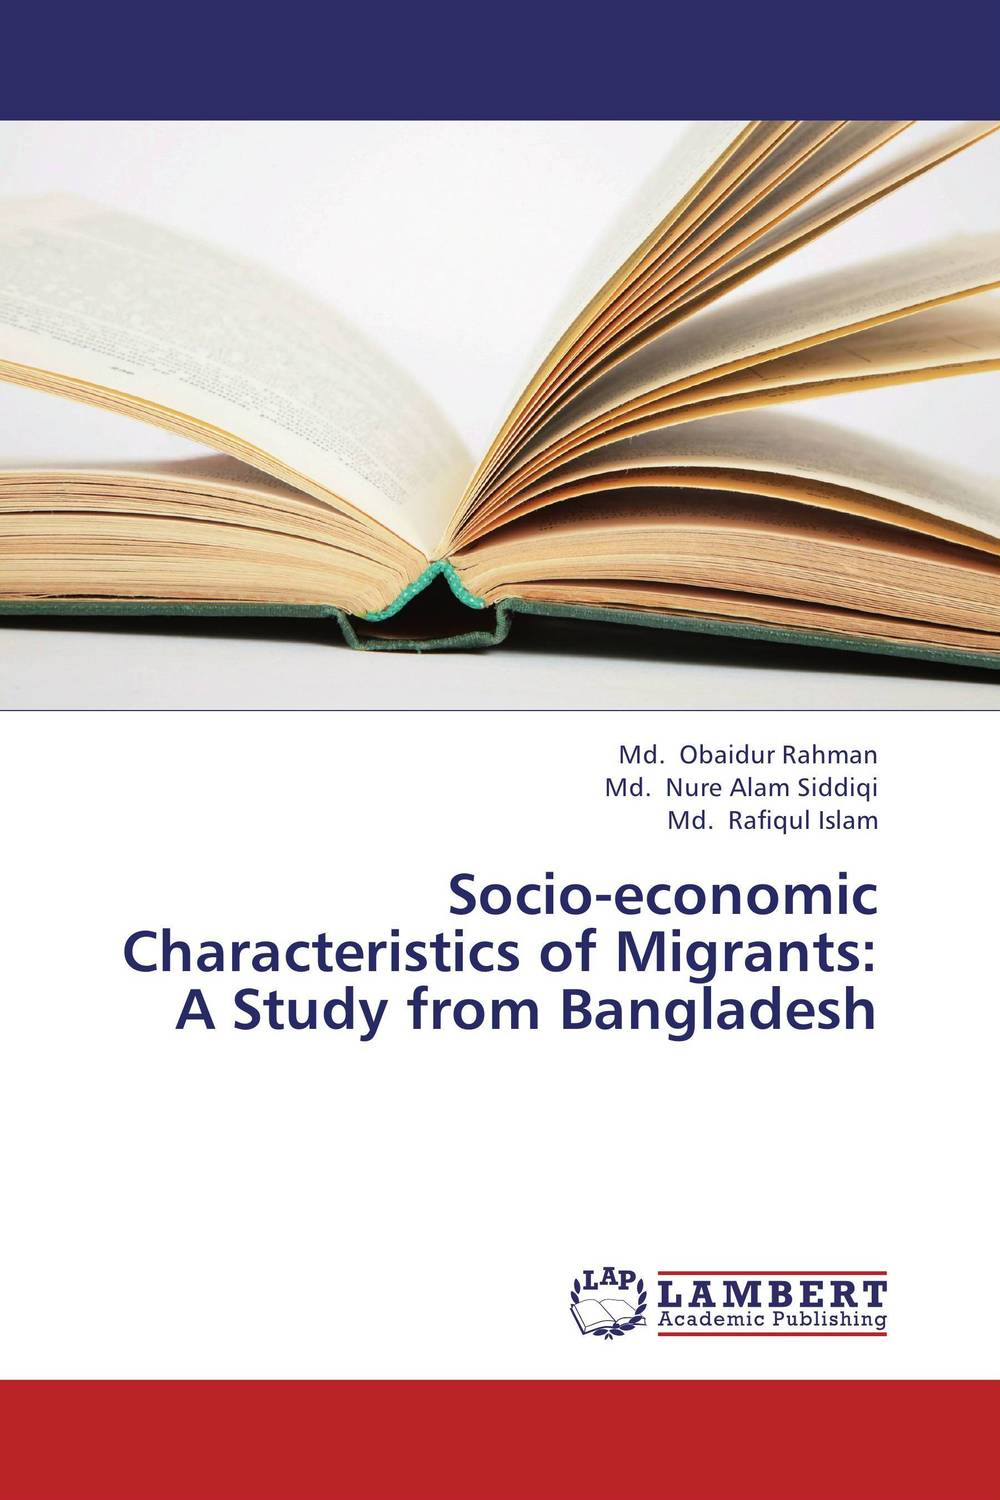 Socio-economic Characteristics of Migrants: A Study from Bangladesh an economic analysis of international student migration